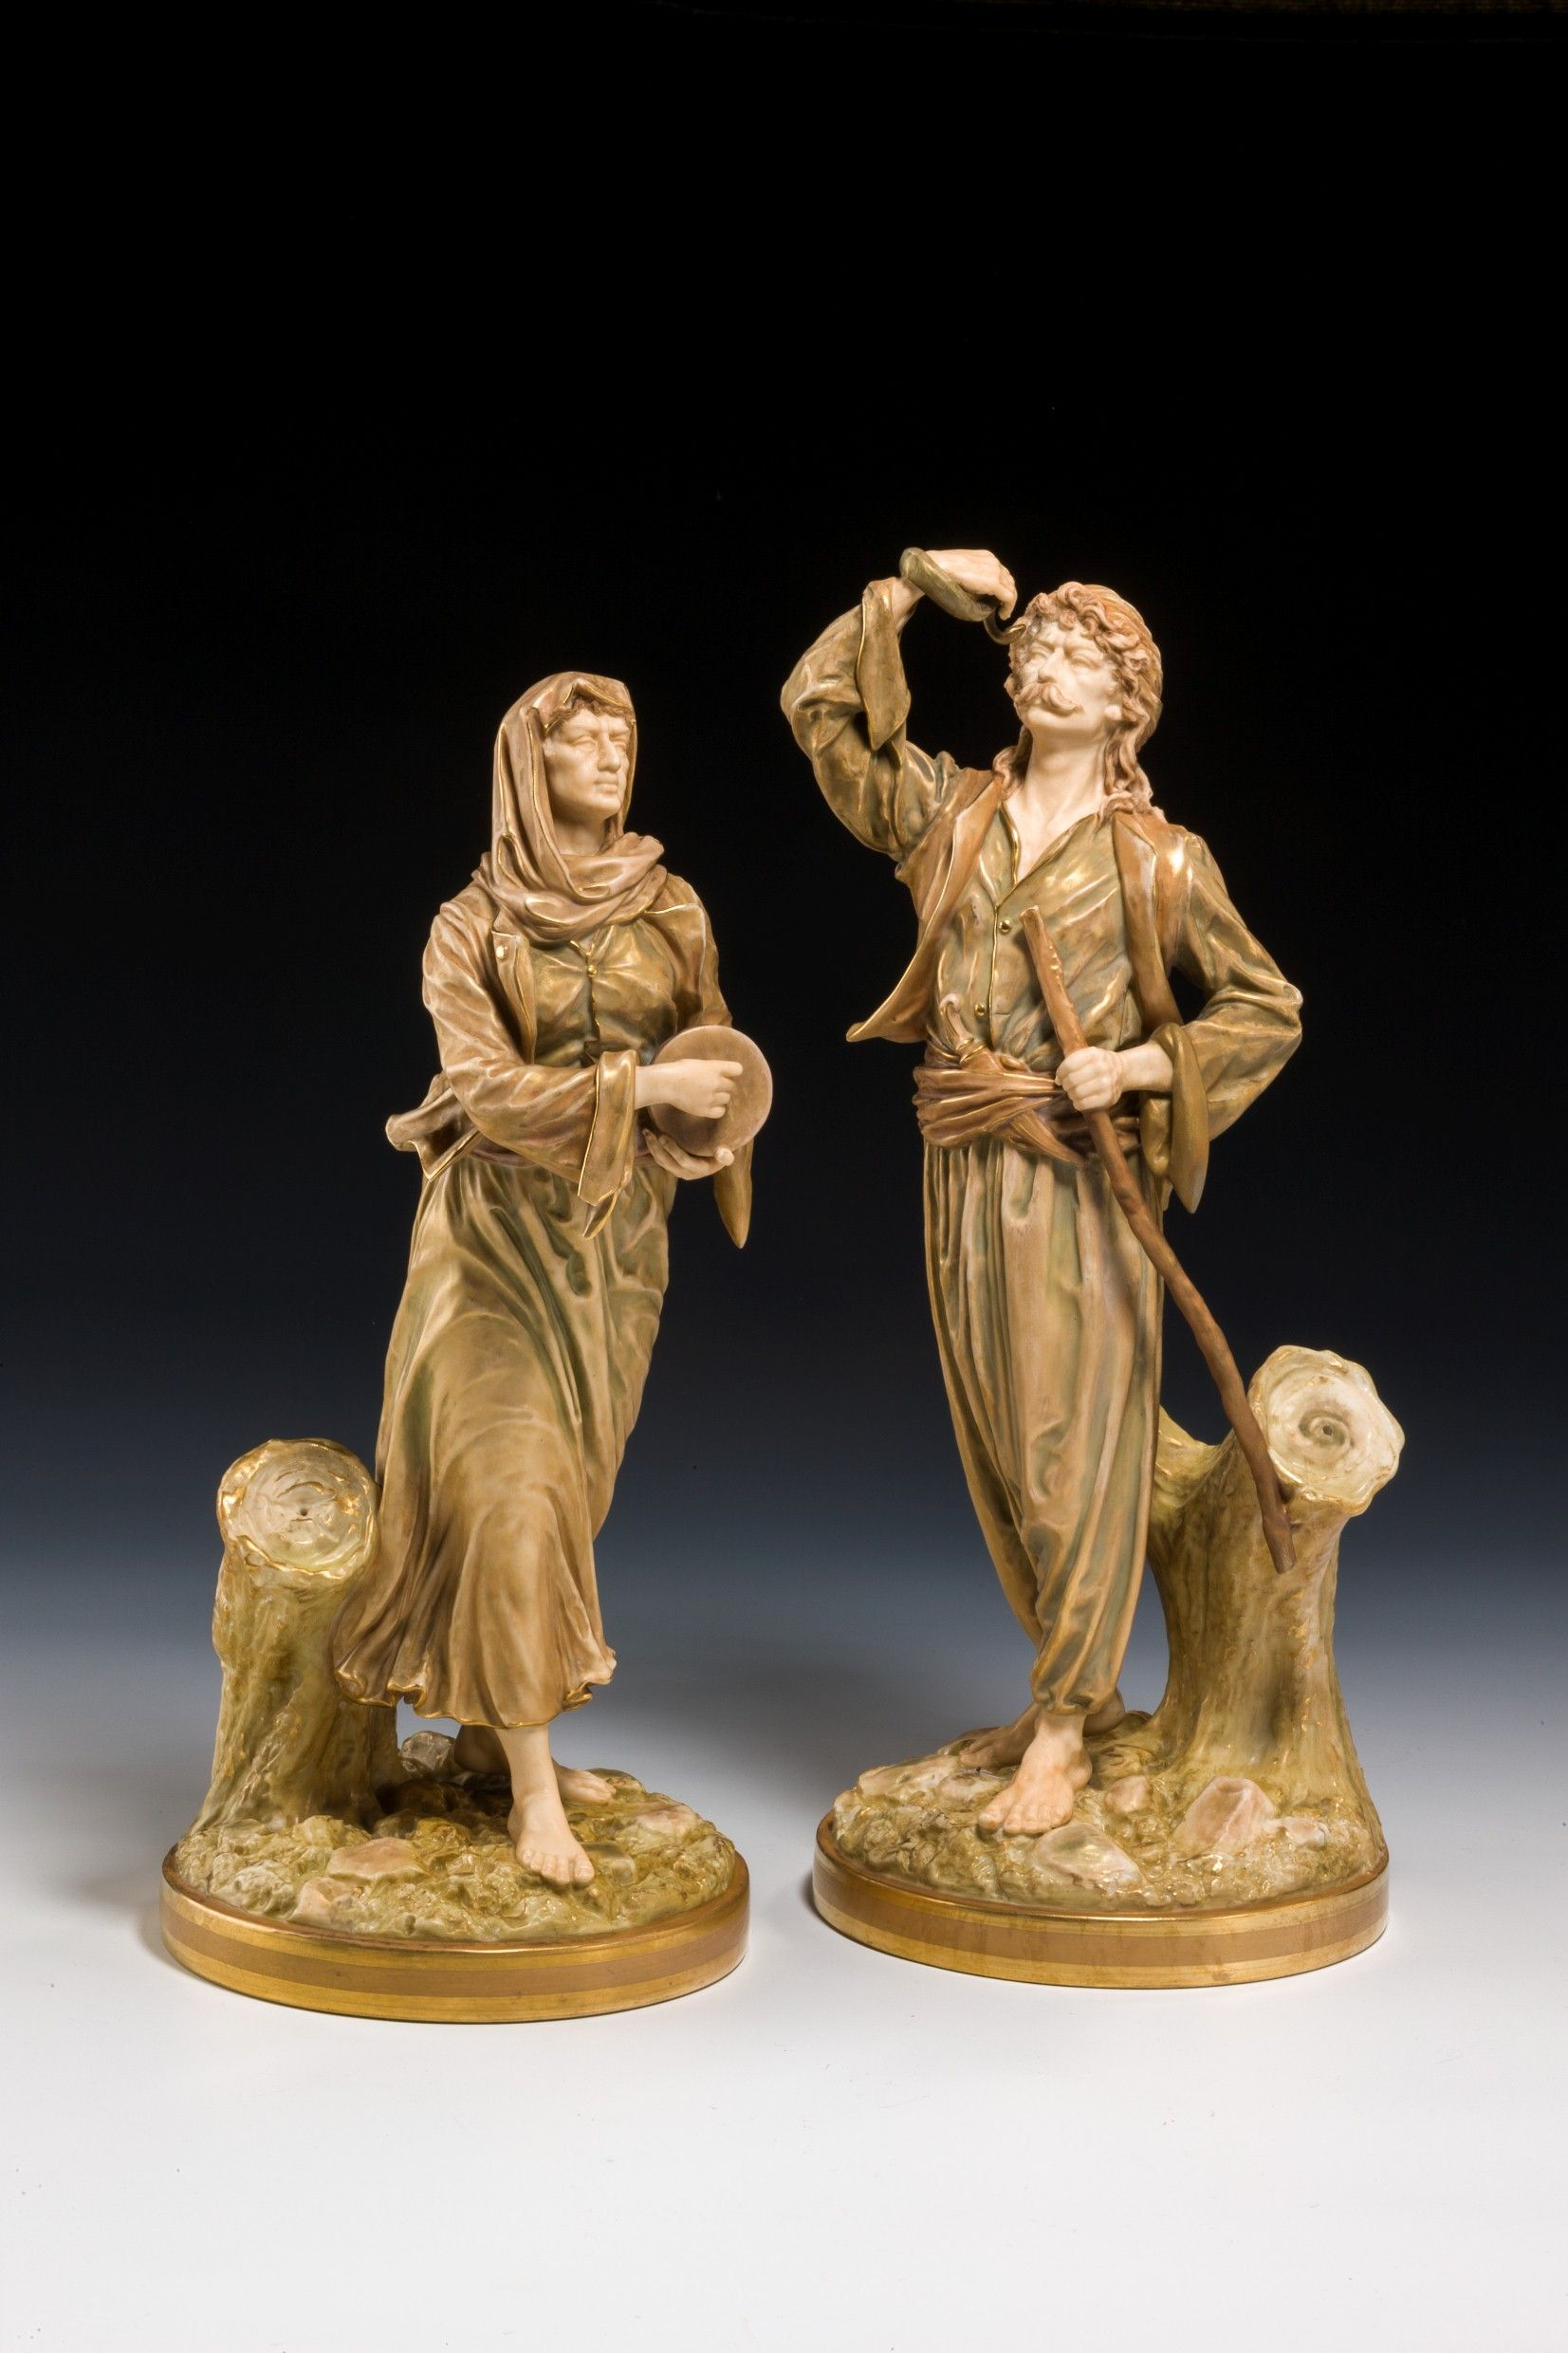 dating royal worcester figures Dating royal worcester marks finely modelled figurines in c1896 backstamps and wileman best message to send online dating backstamps about royal worcester.